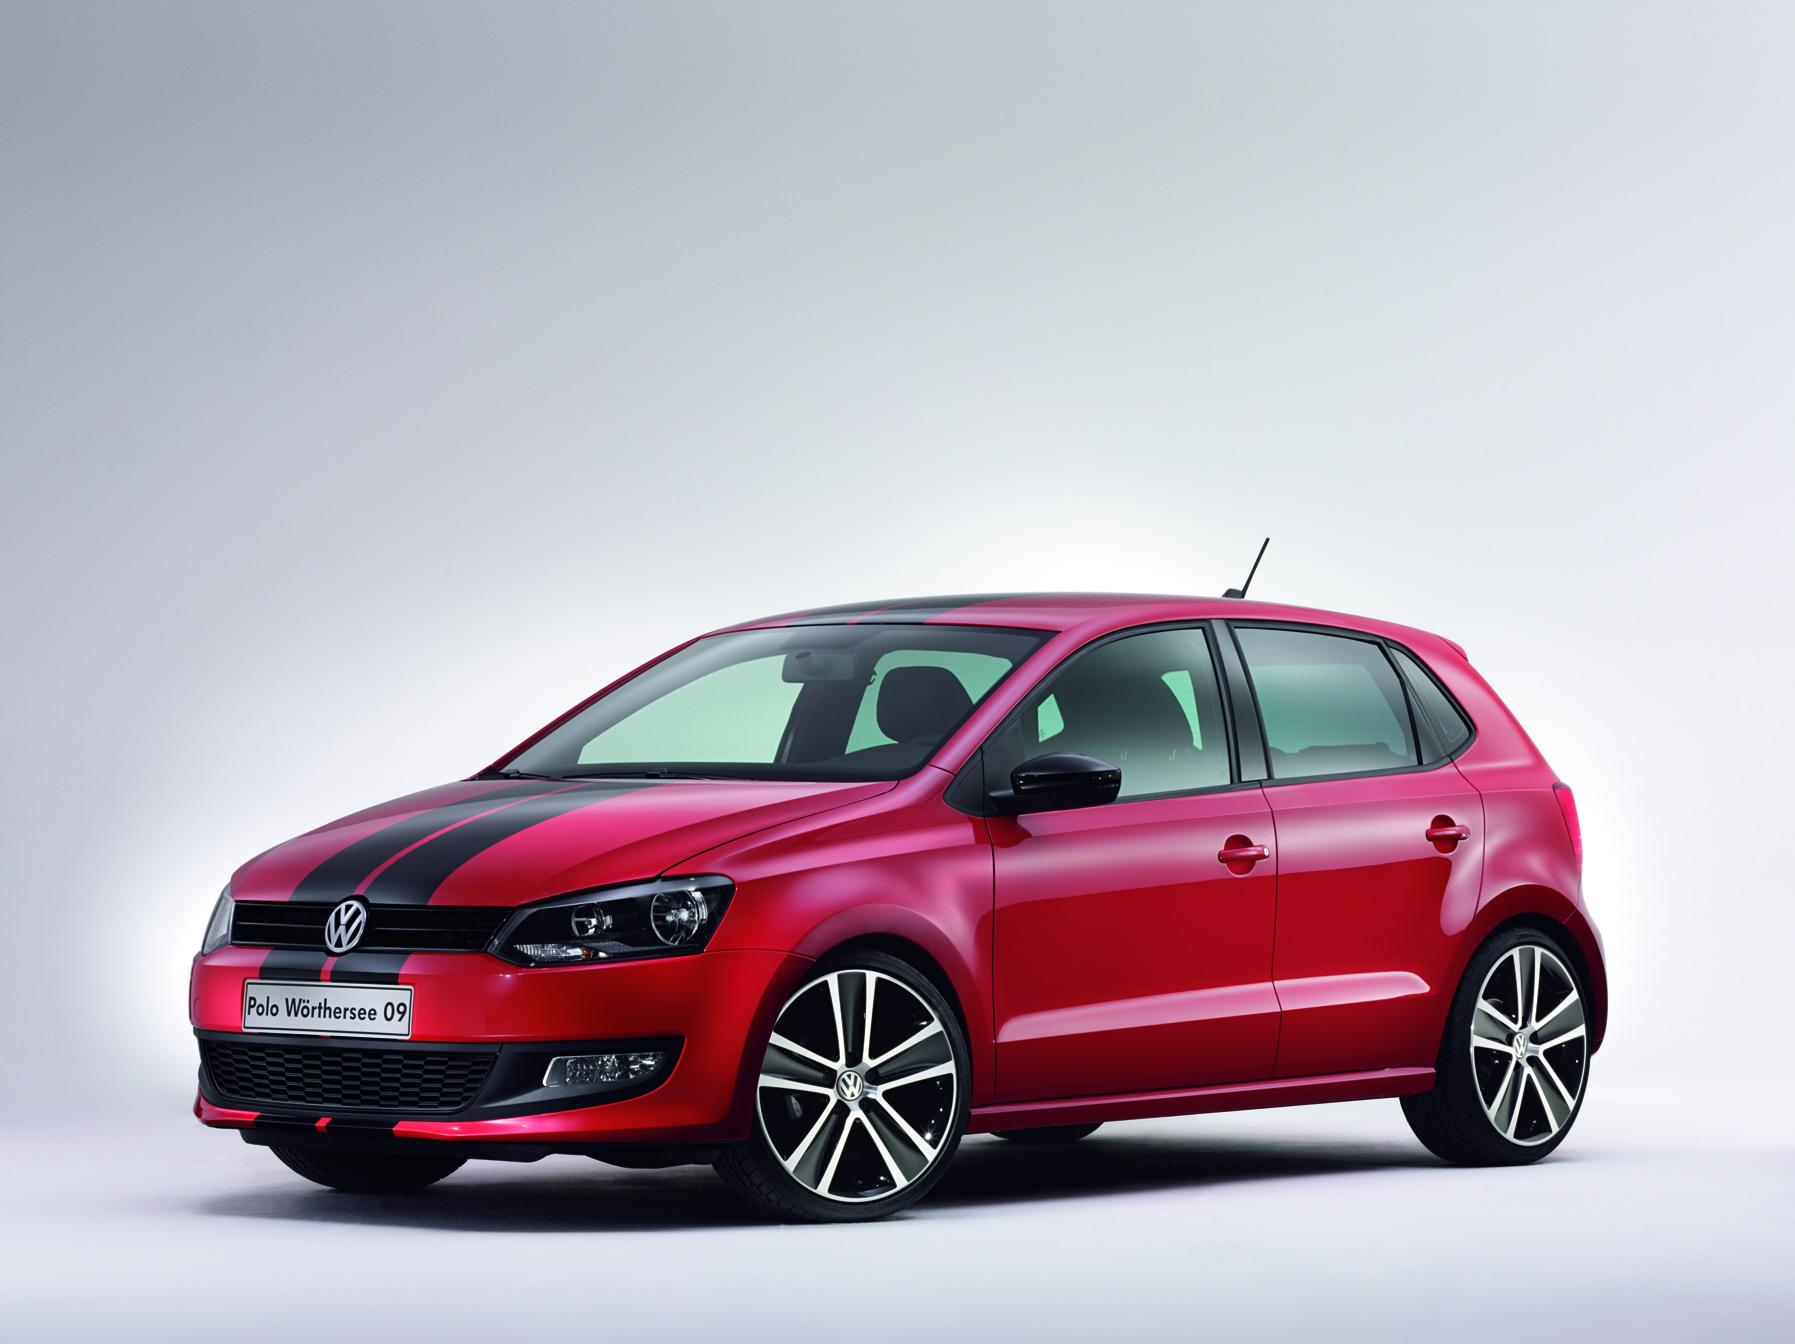 2009 Volkswagen Polo Worthersee 09 Pictures Photos Wallpapers